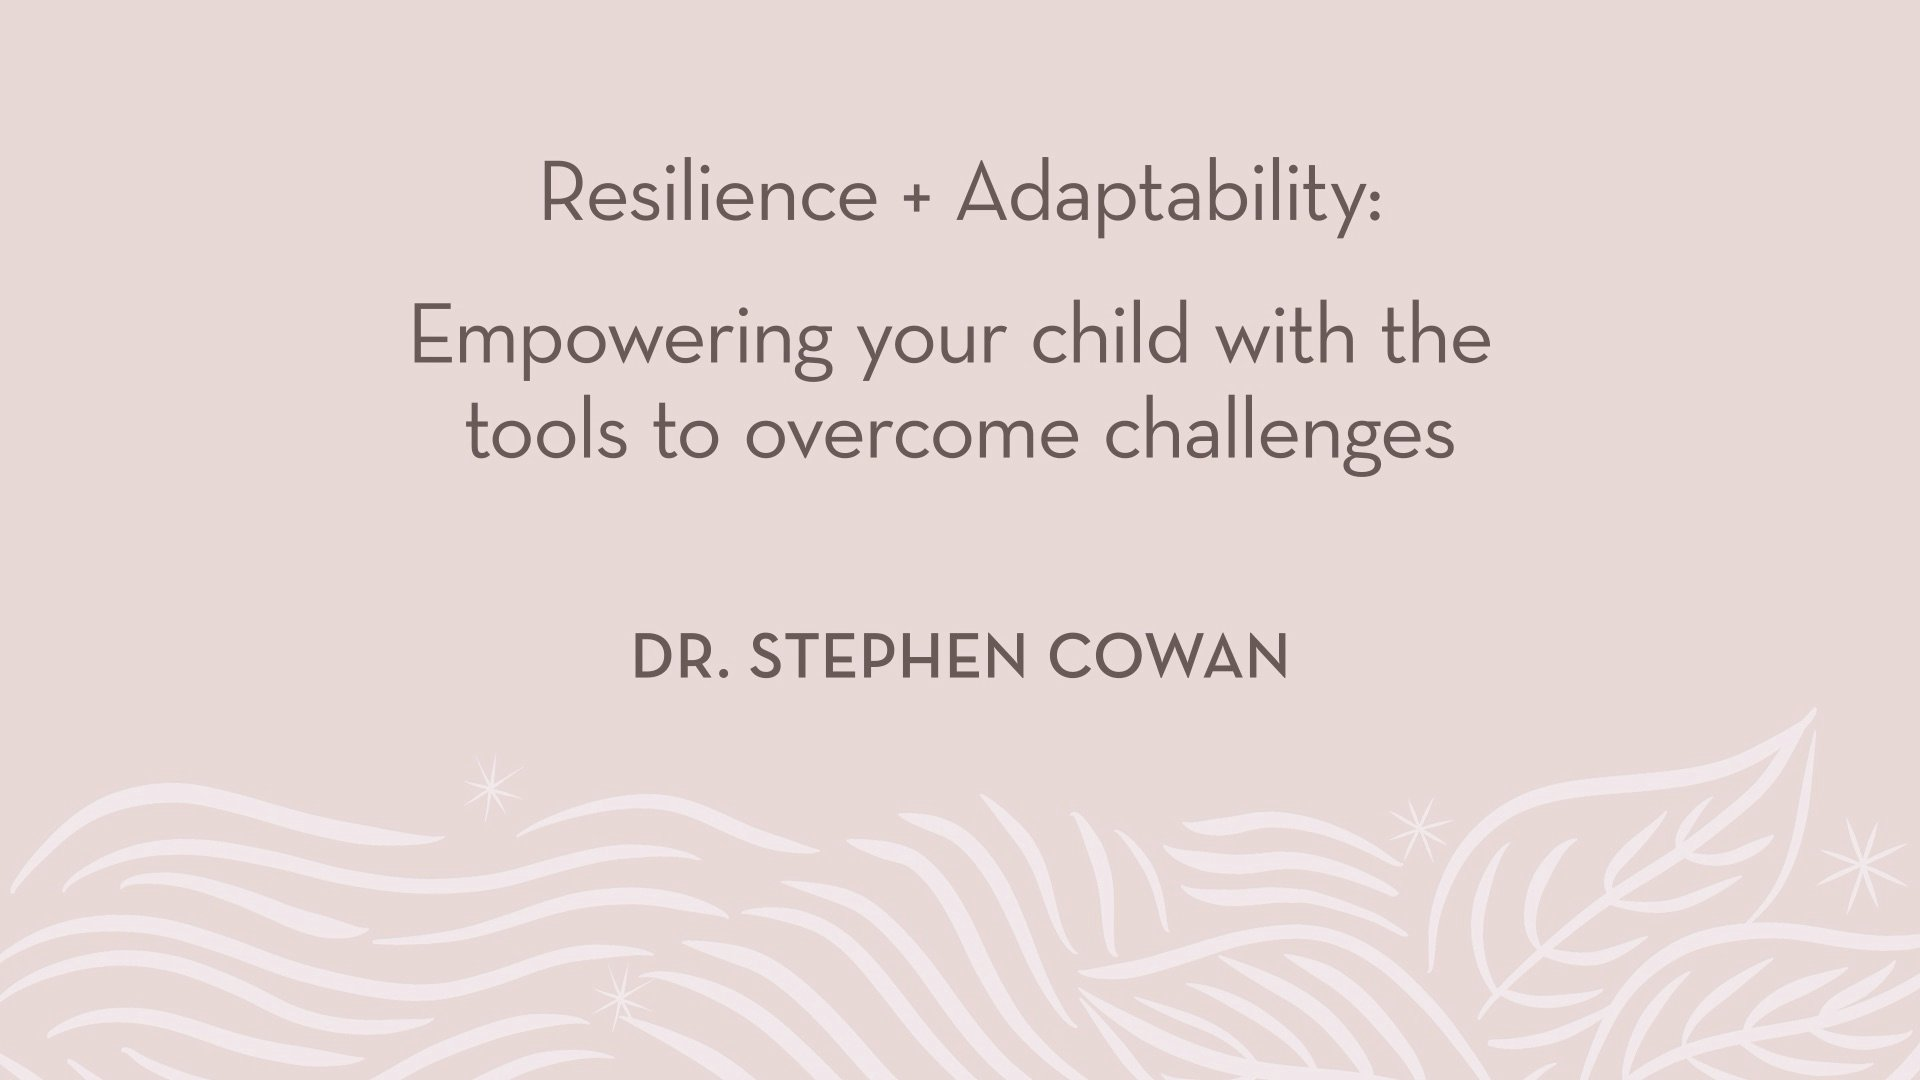 Dr. Cowan | Resilience + Adaptability - Empowering your child with the tools to overcome challenges